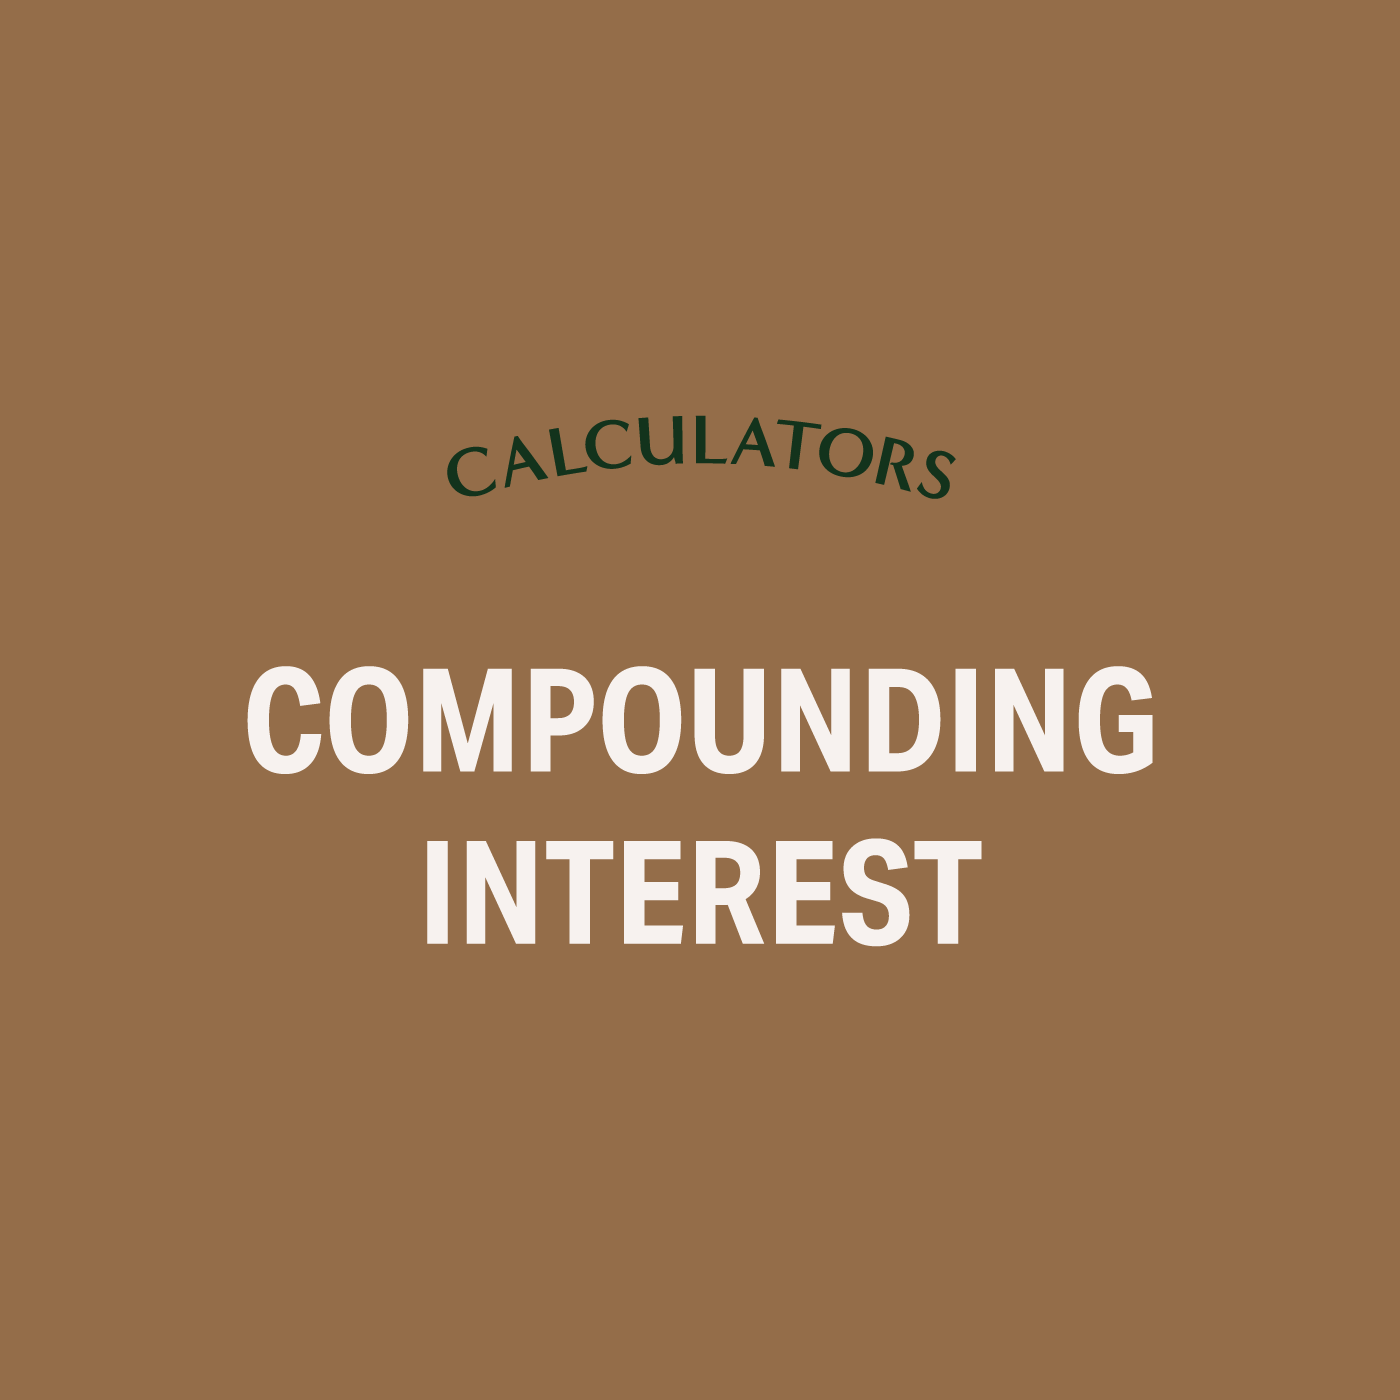 - Determine how much your money can grow using the power of compound interest. This compound interest calculator demonstrates how to put this savings strategy to work.